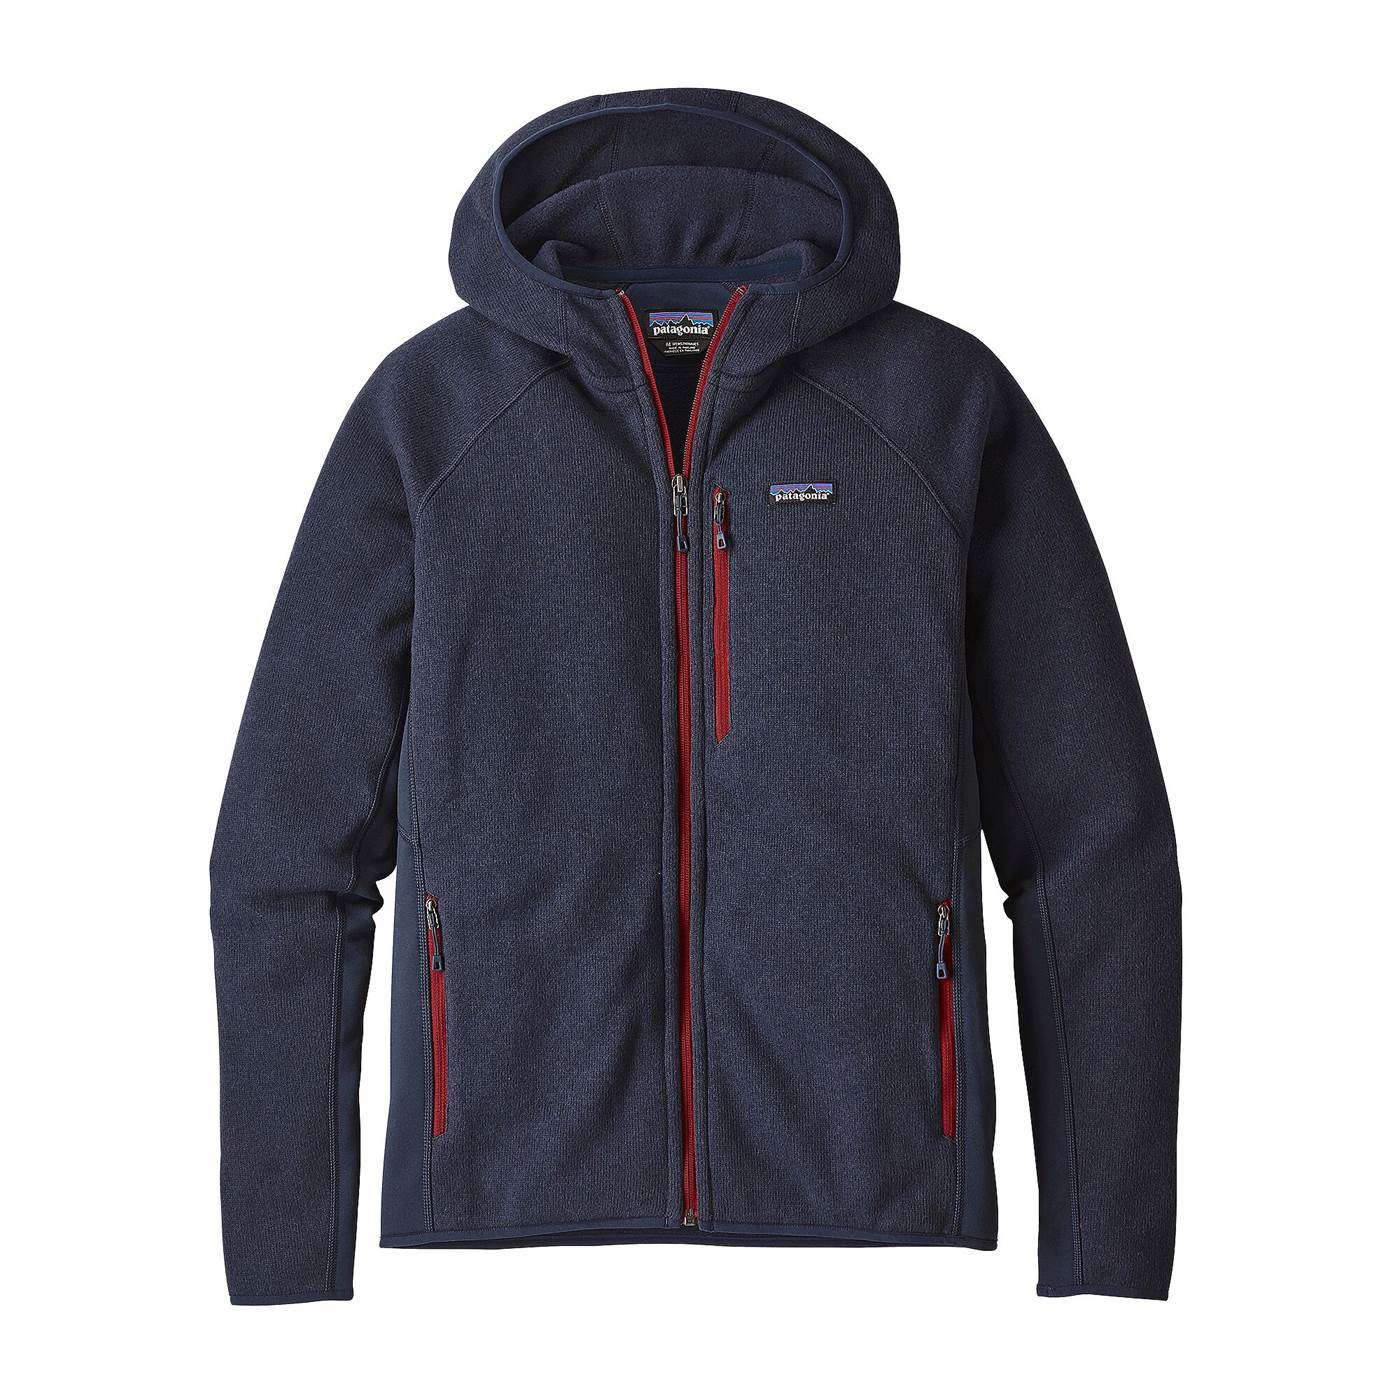 Performance Better Sweater Hoody - Men's